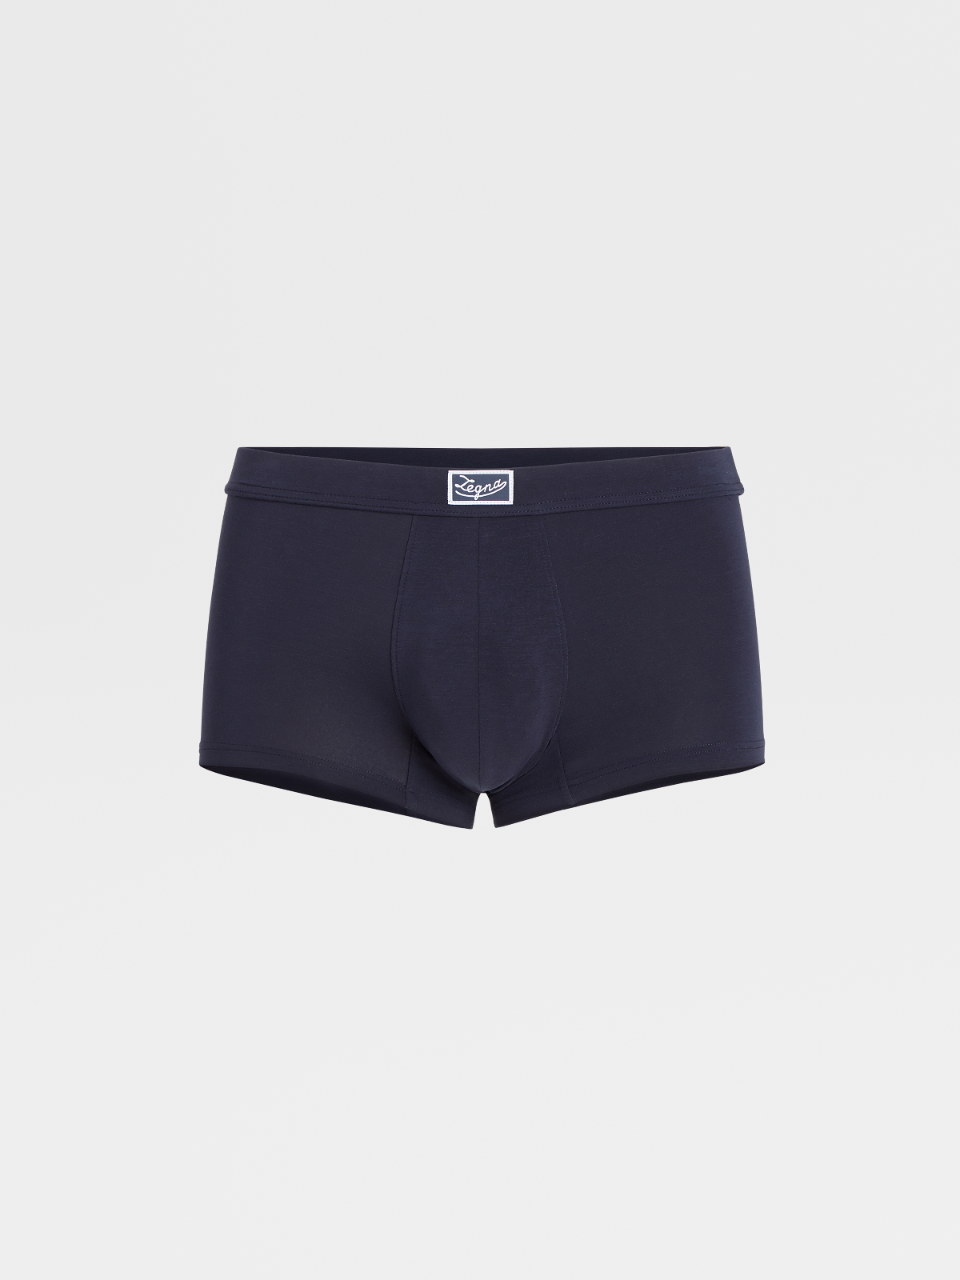 Farbenfrohe Micromodal-Boxershorts